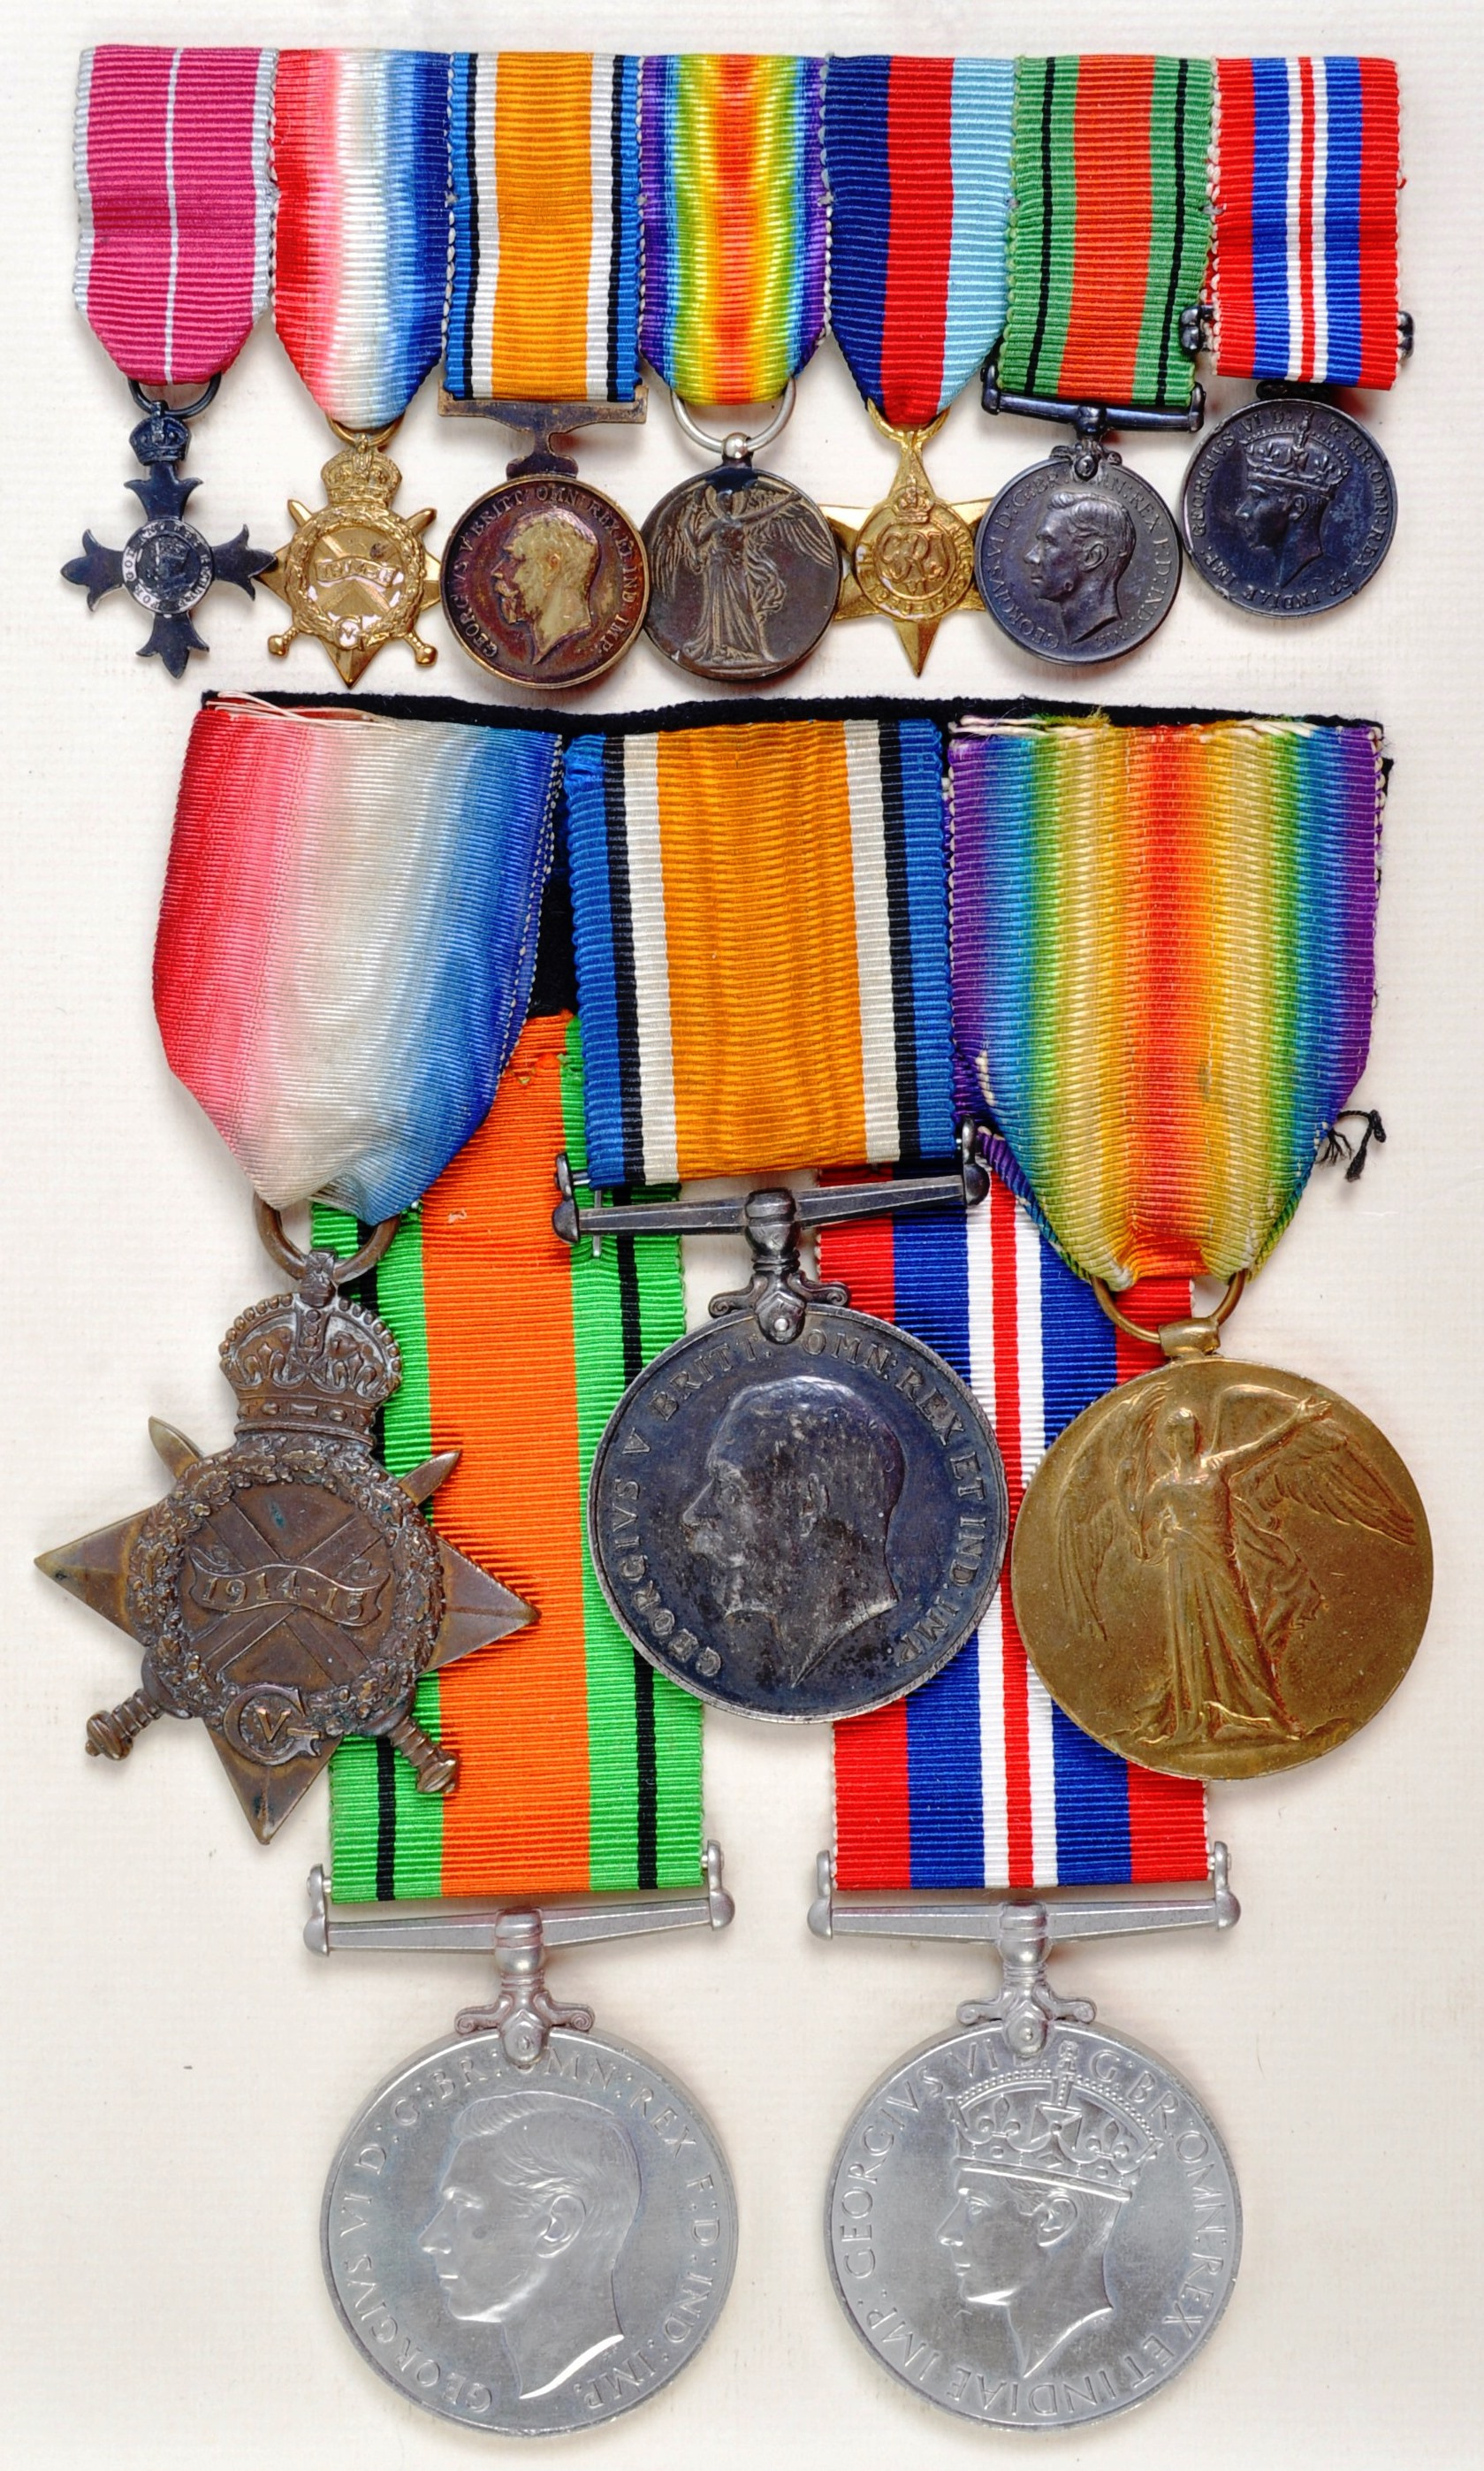 WWI & WWII SECOND WORLD WAR MEDAL GROUP - ROYAL NAVY